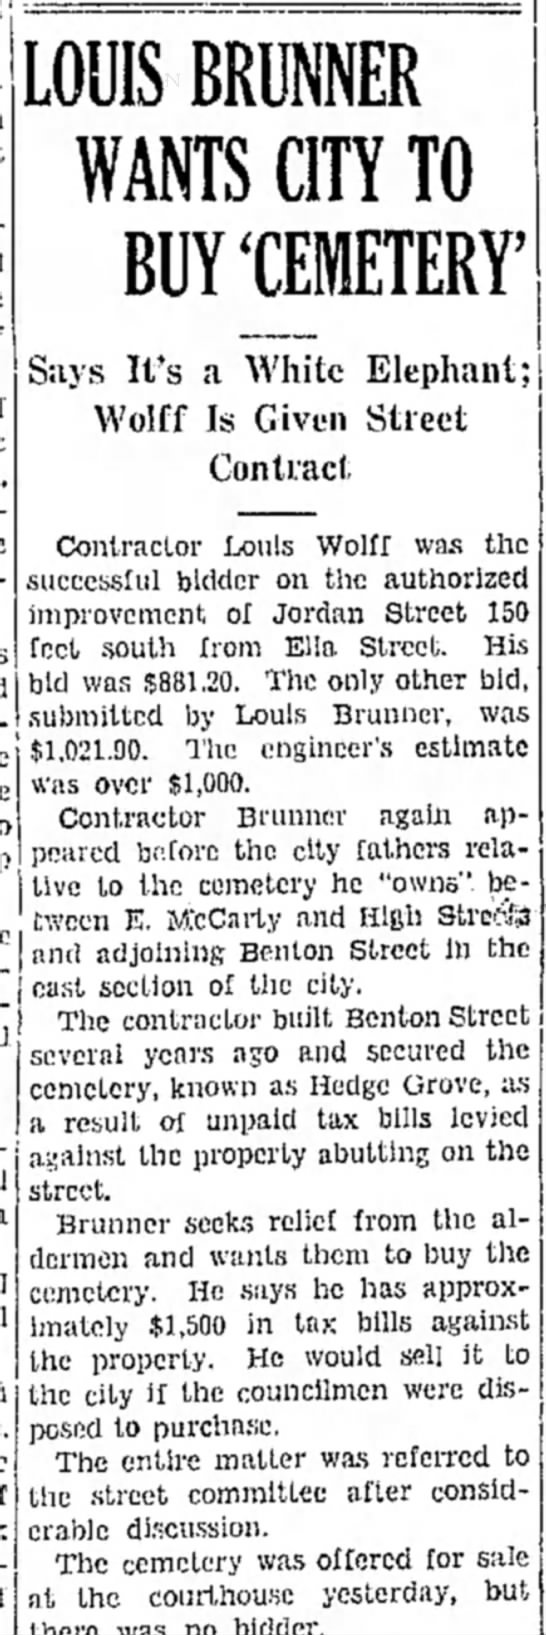 Hedge Grove Cemetery, The Daily Capital News, 3 Oct 1933 - - LOUIS BRUNNER WANTS CITY TO BUY 'CEMETERY'...